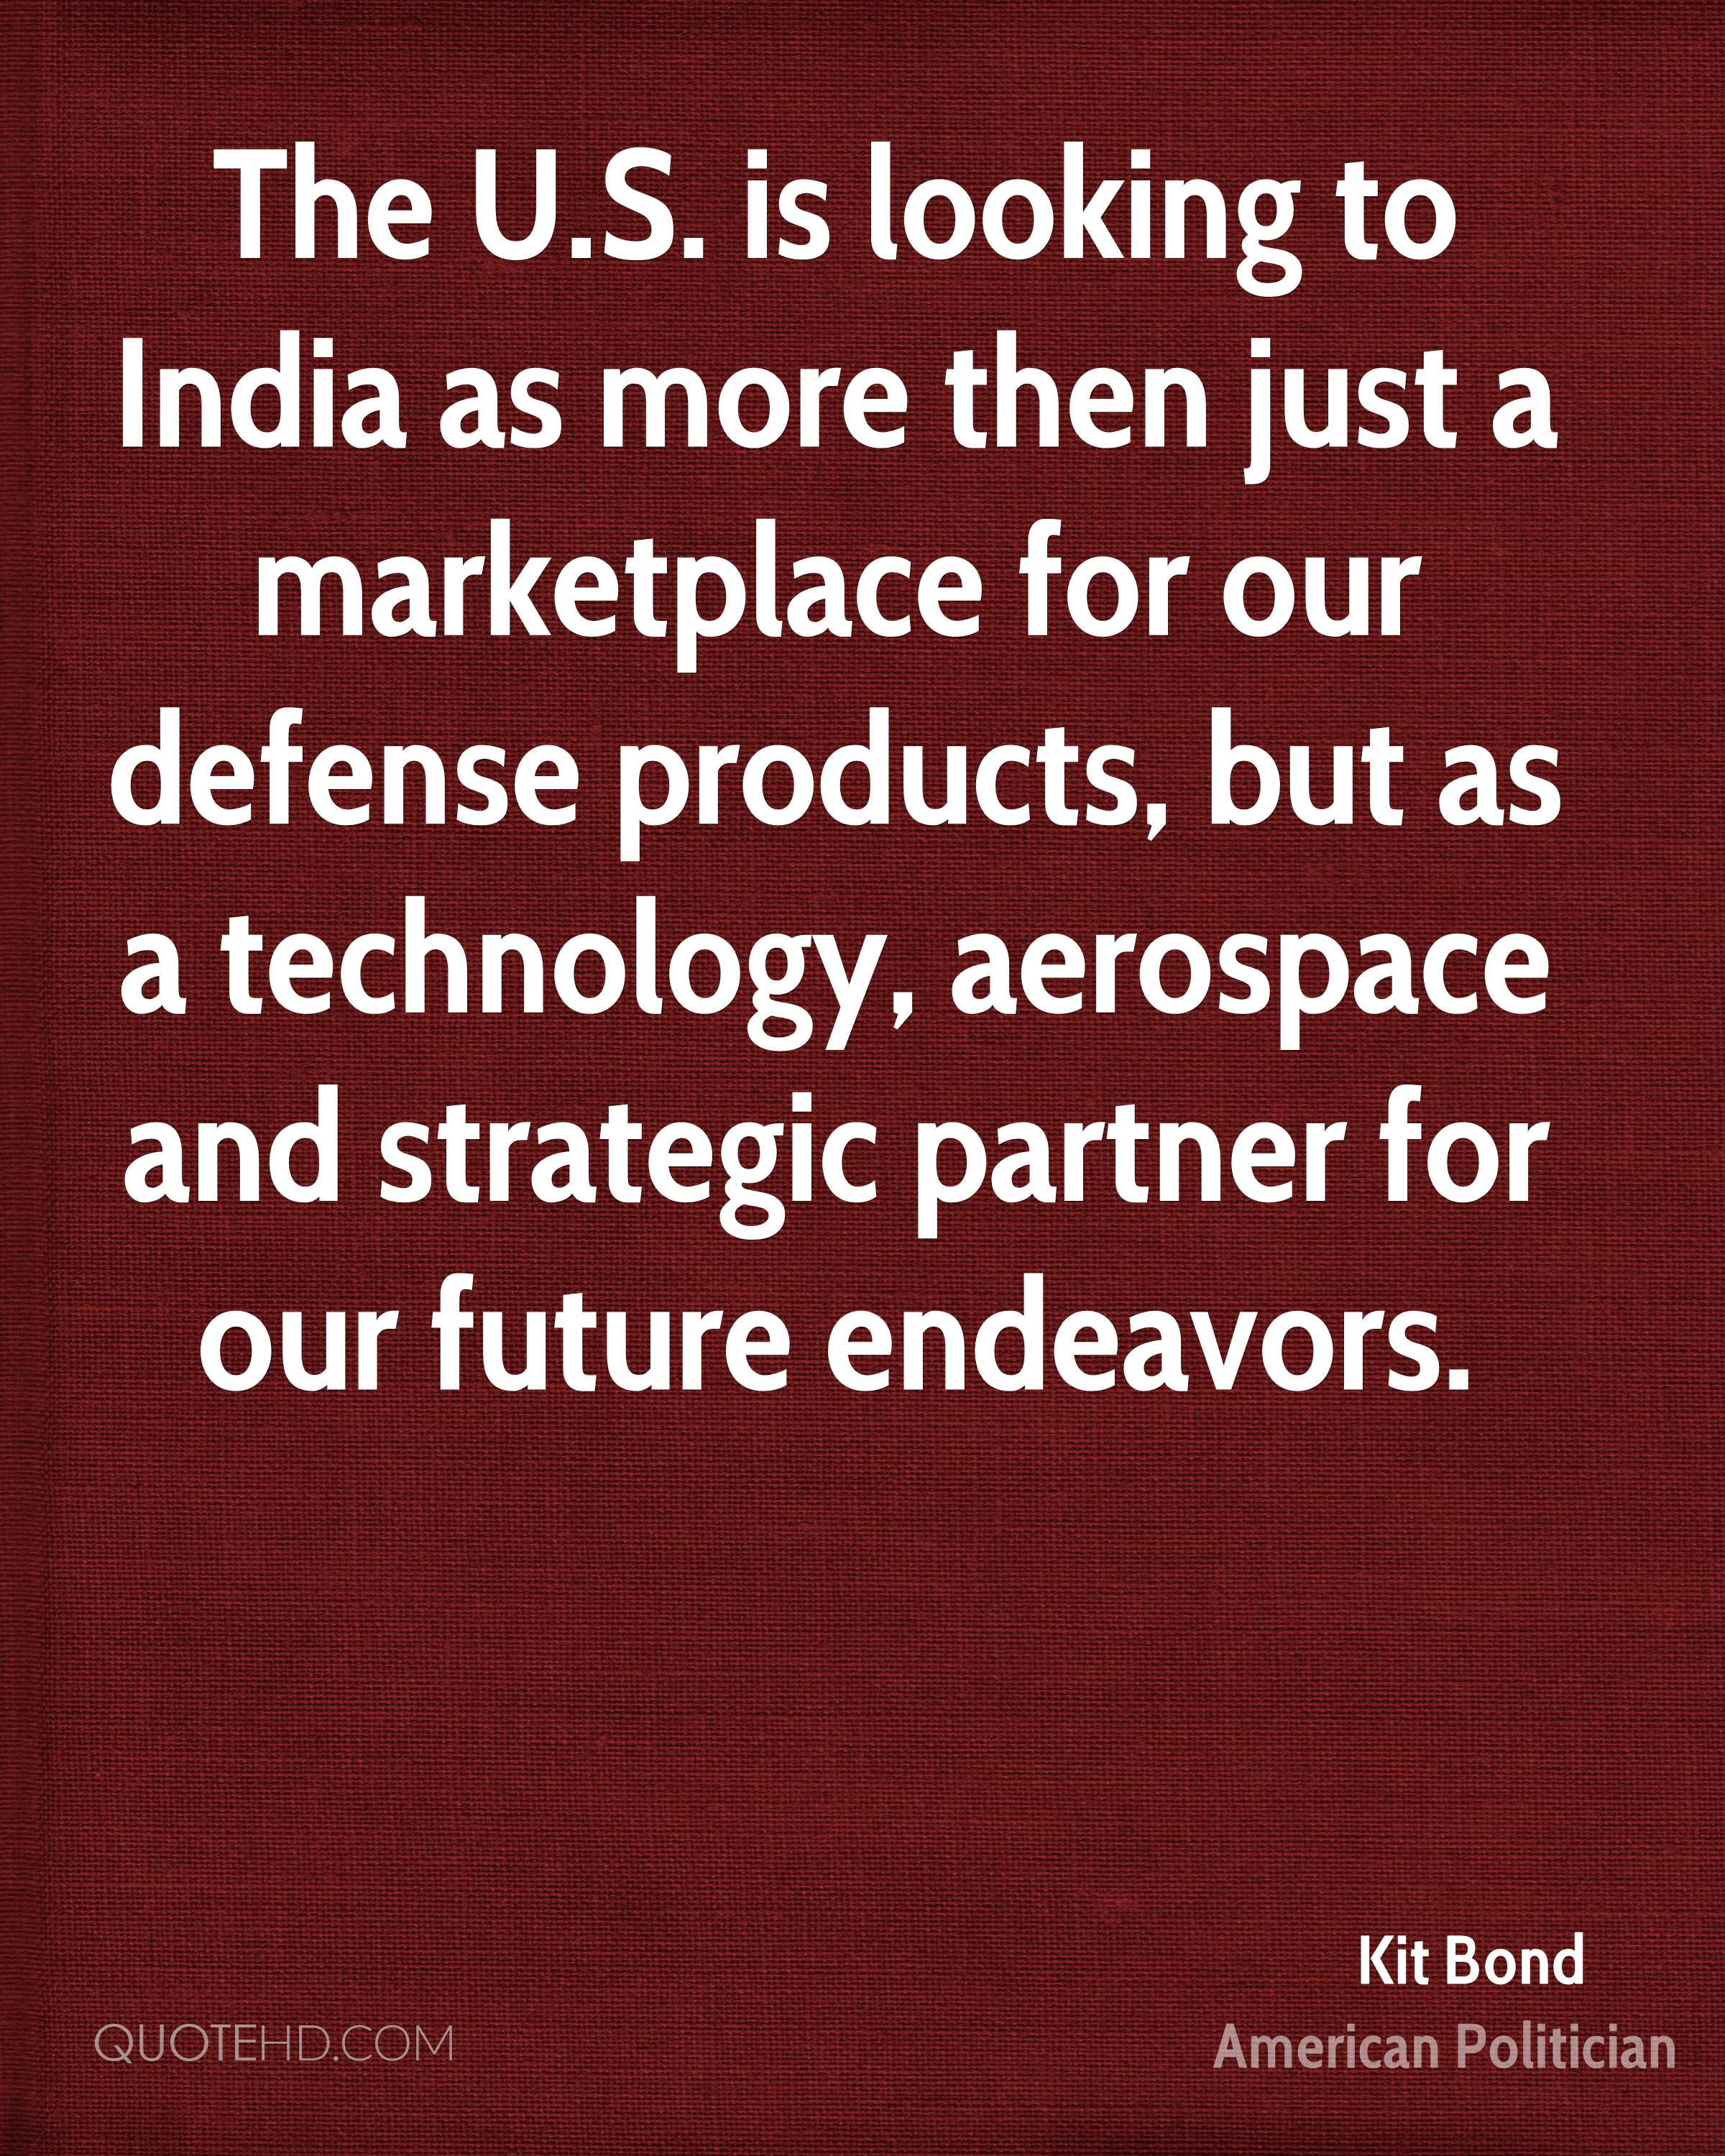 The U.S. is looking to India as more then just a marketplace for our defense products, but as a technology, aerospace and strategic partner for our future endeavors.